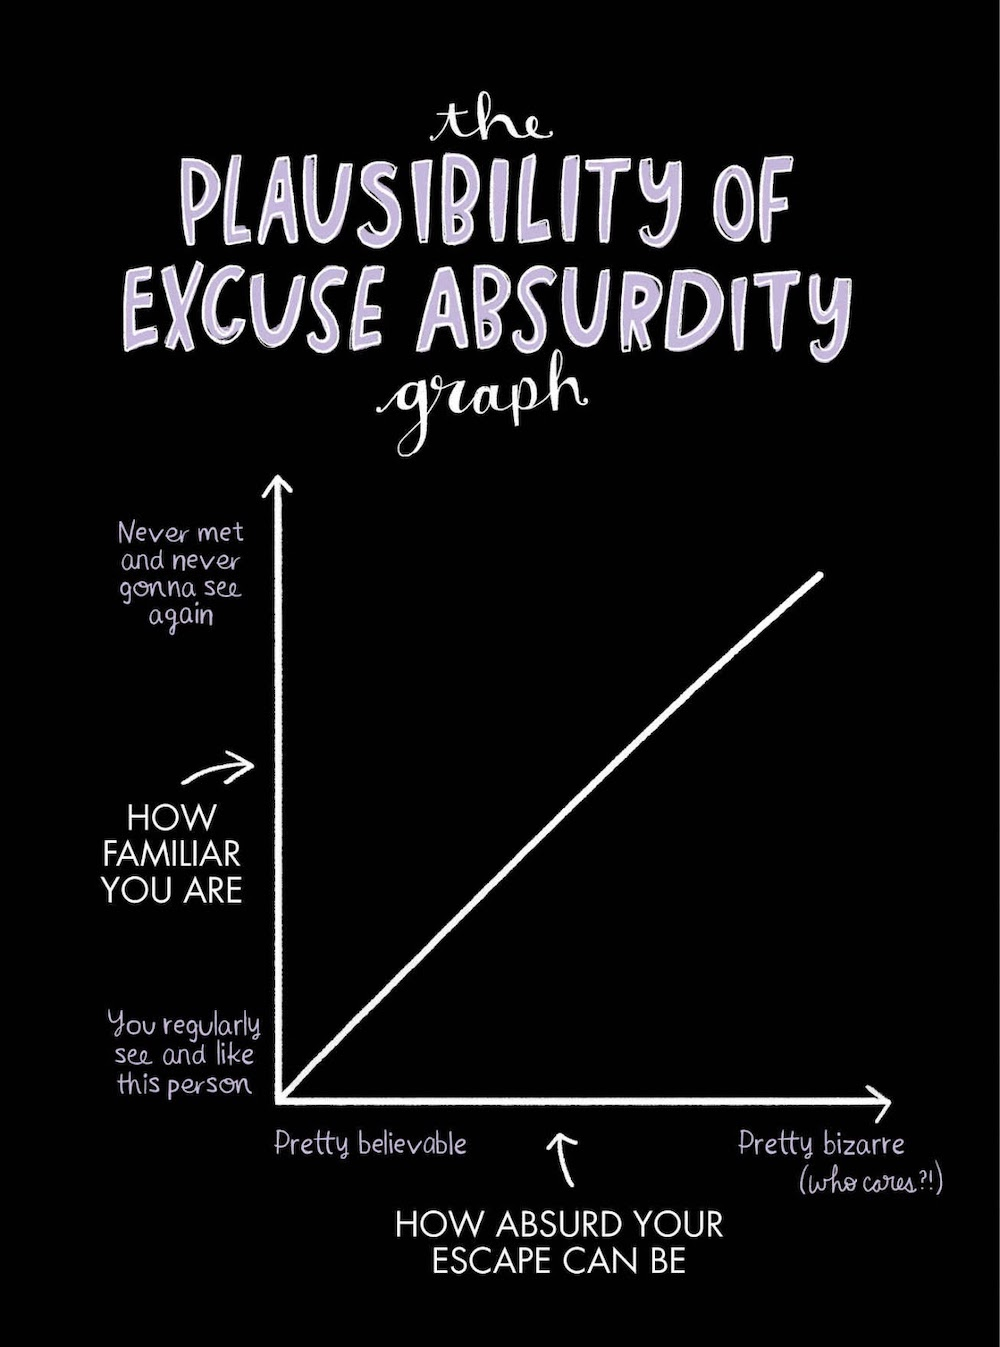 the Plausiblity of Excuse Absurdity graph